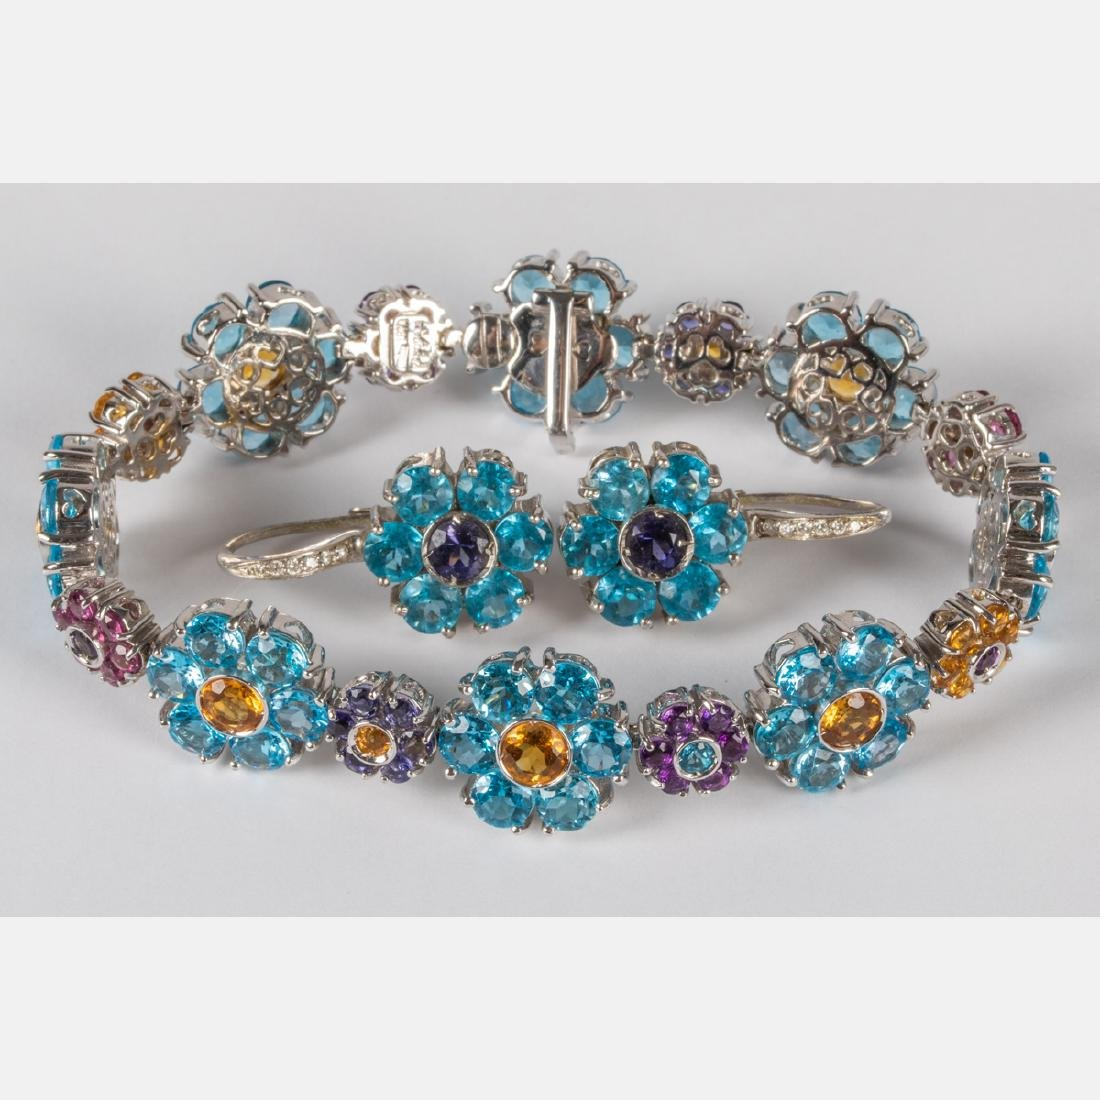 A Pasquale Bruni 18kt. White Gold, Blue Topaz, Amethyst